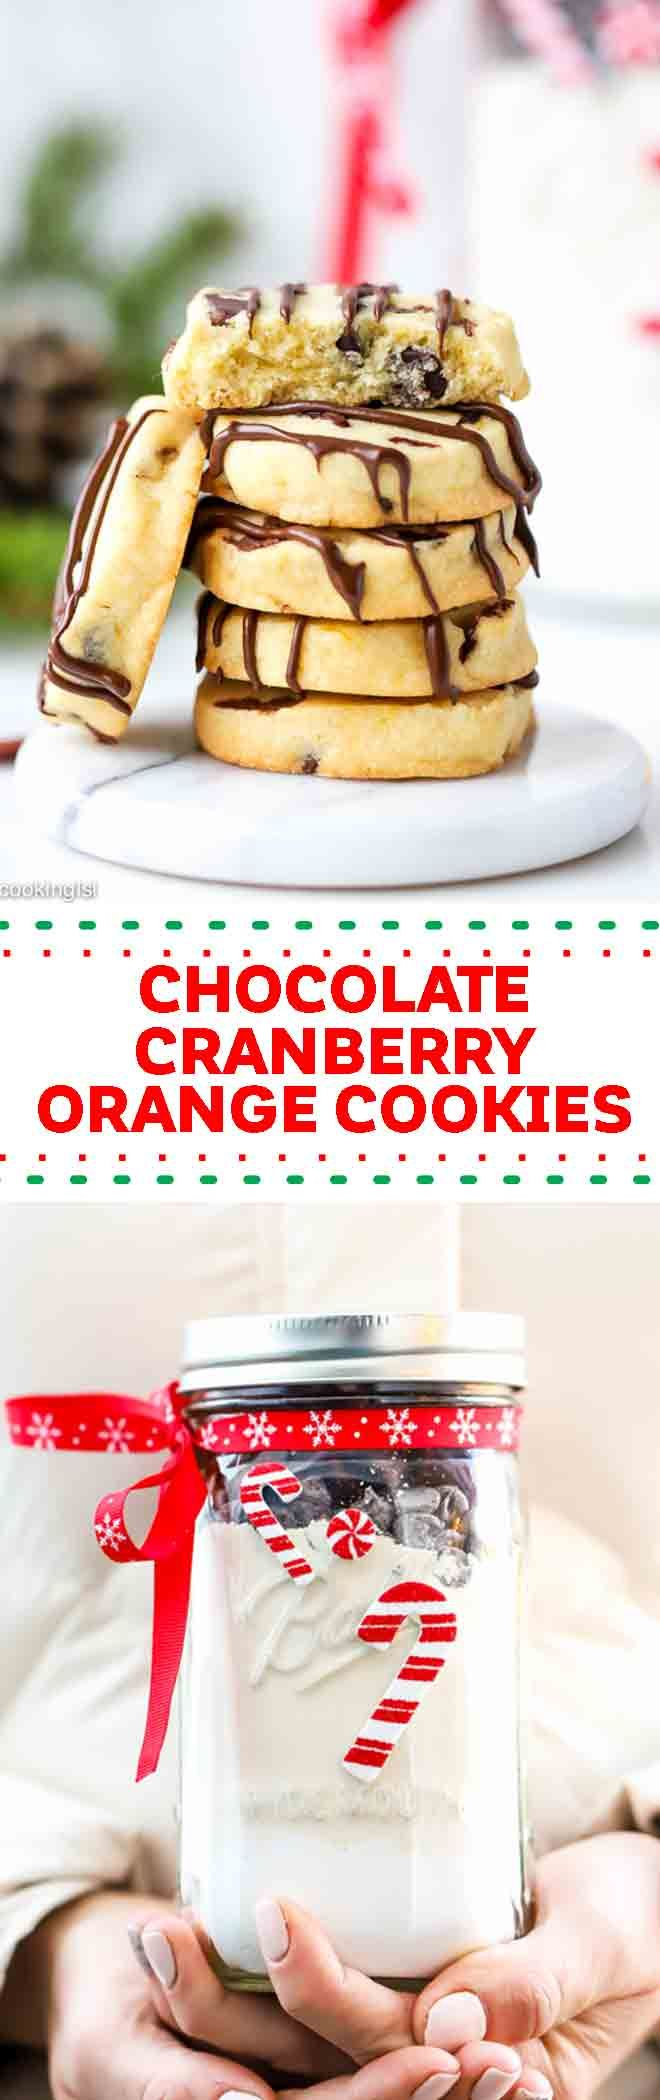 These slice and bake chocolate orange cranberry cookies